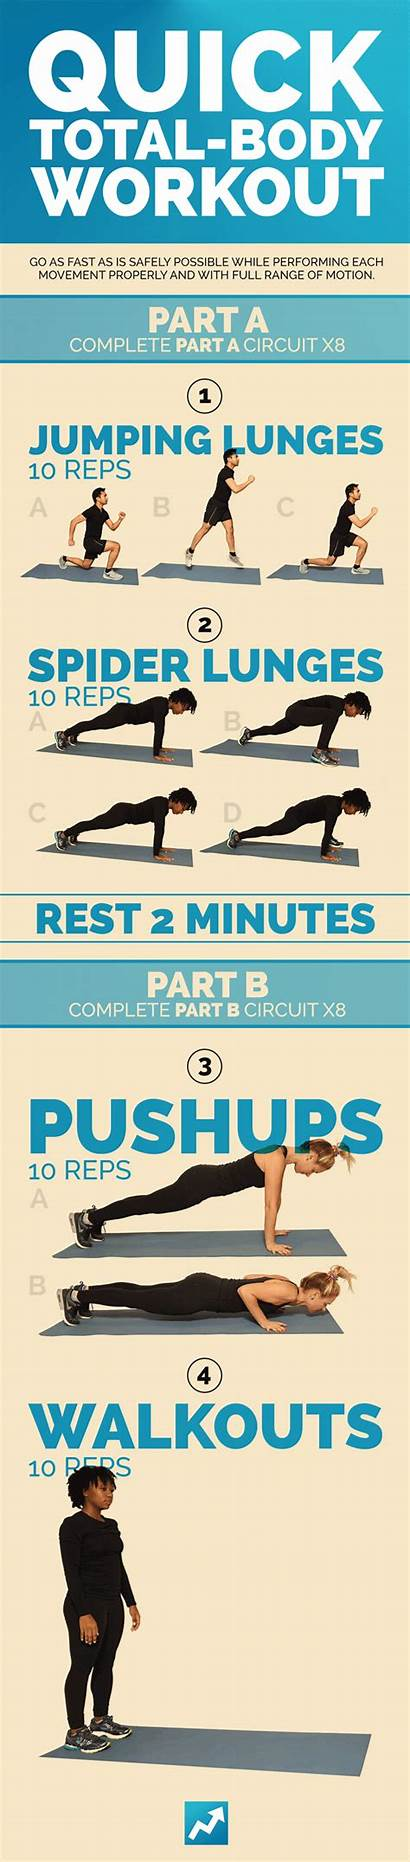 Exercises Workouts Shape Workout Quick Total Buzzfeed